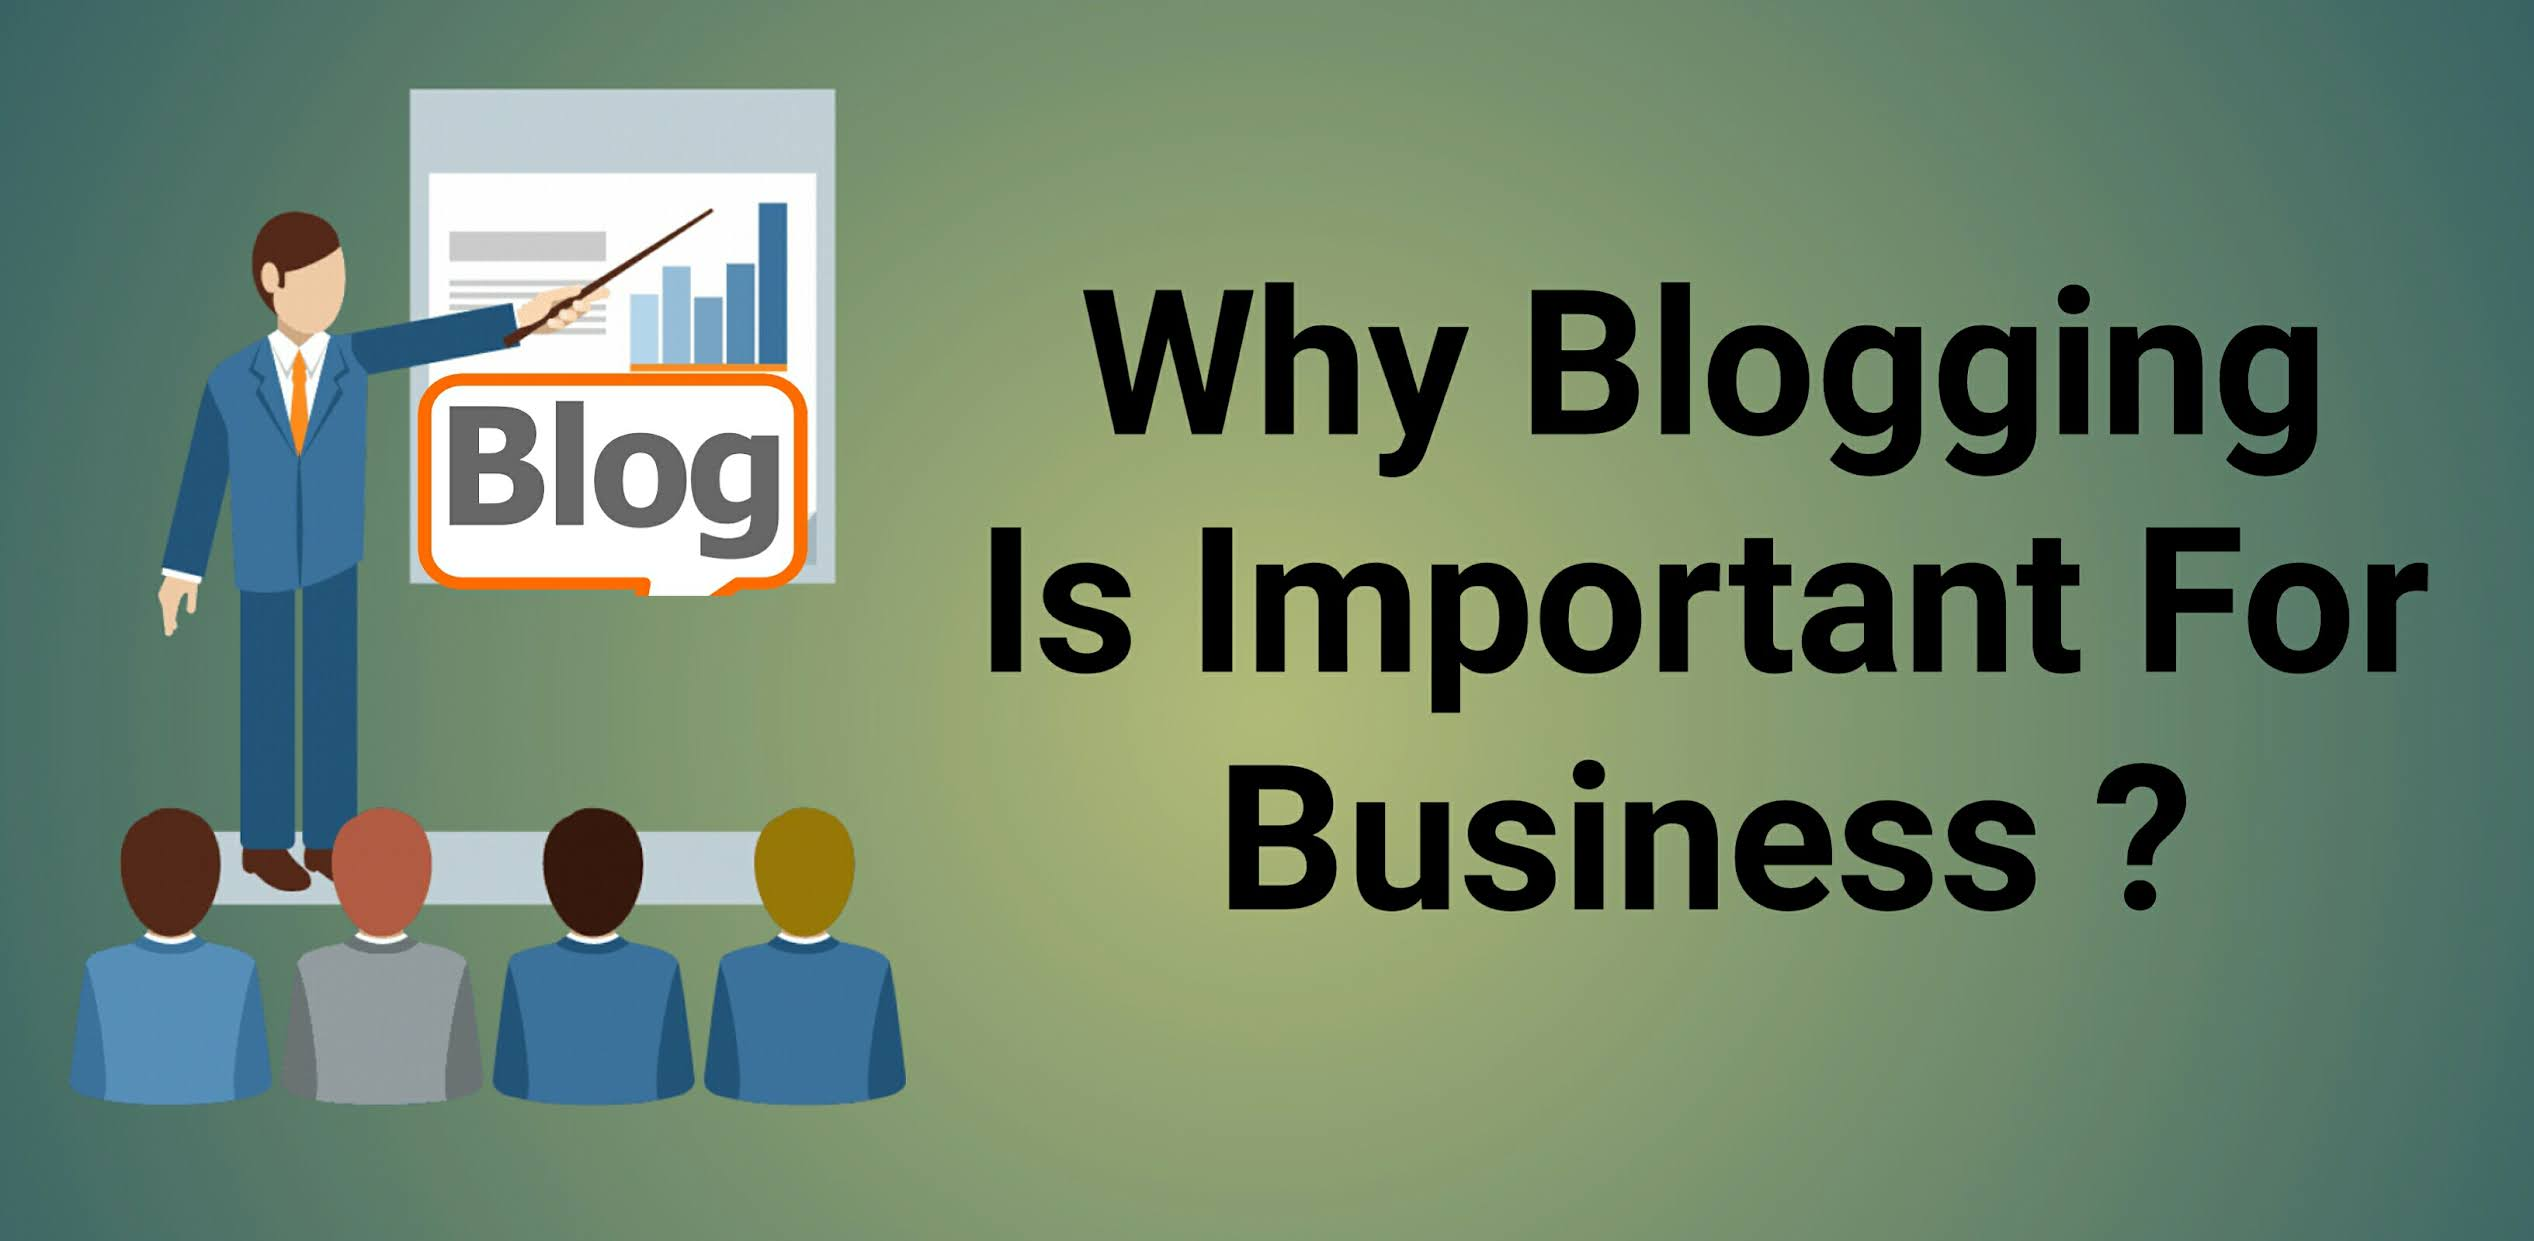 Why Blogging Is Important For Business ?